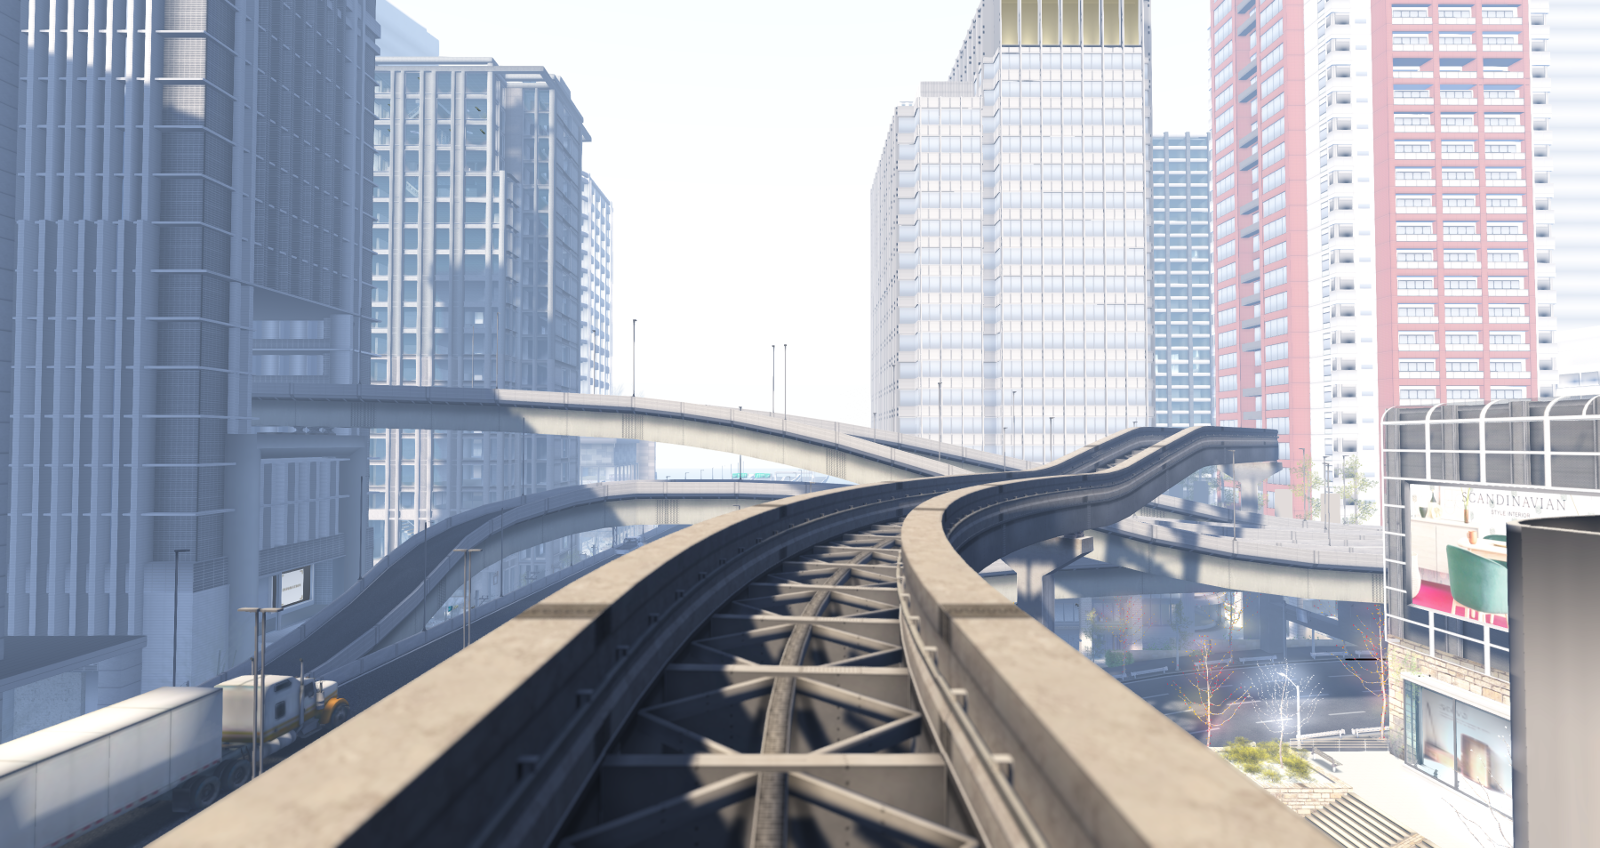 Mopire city: highways and elevated railway